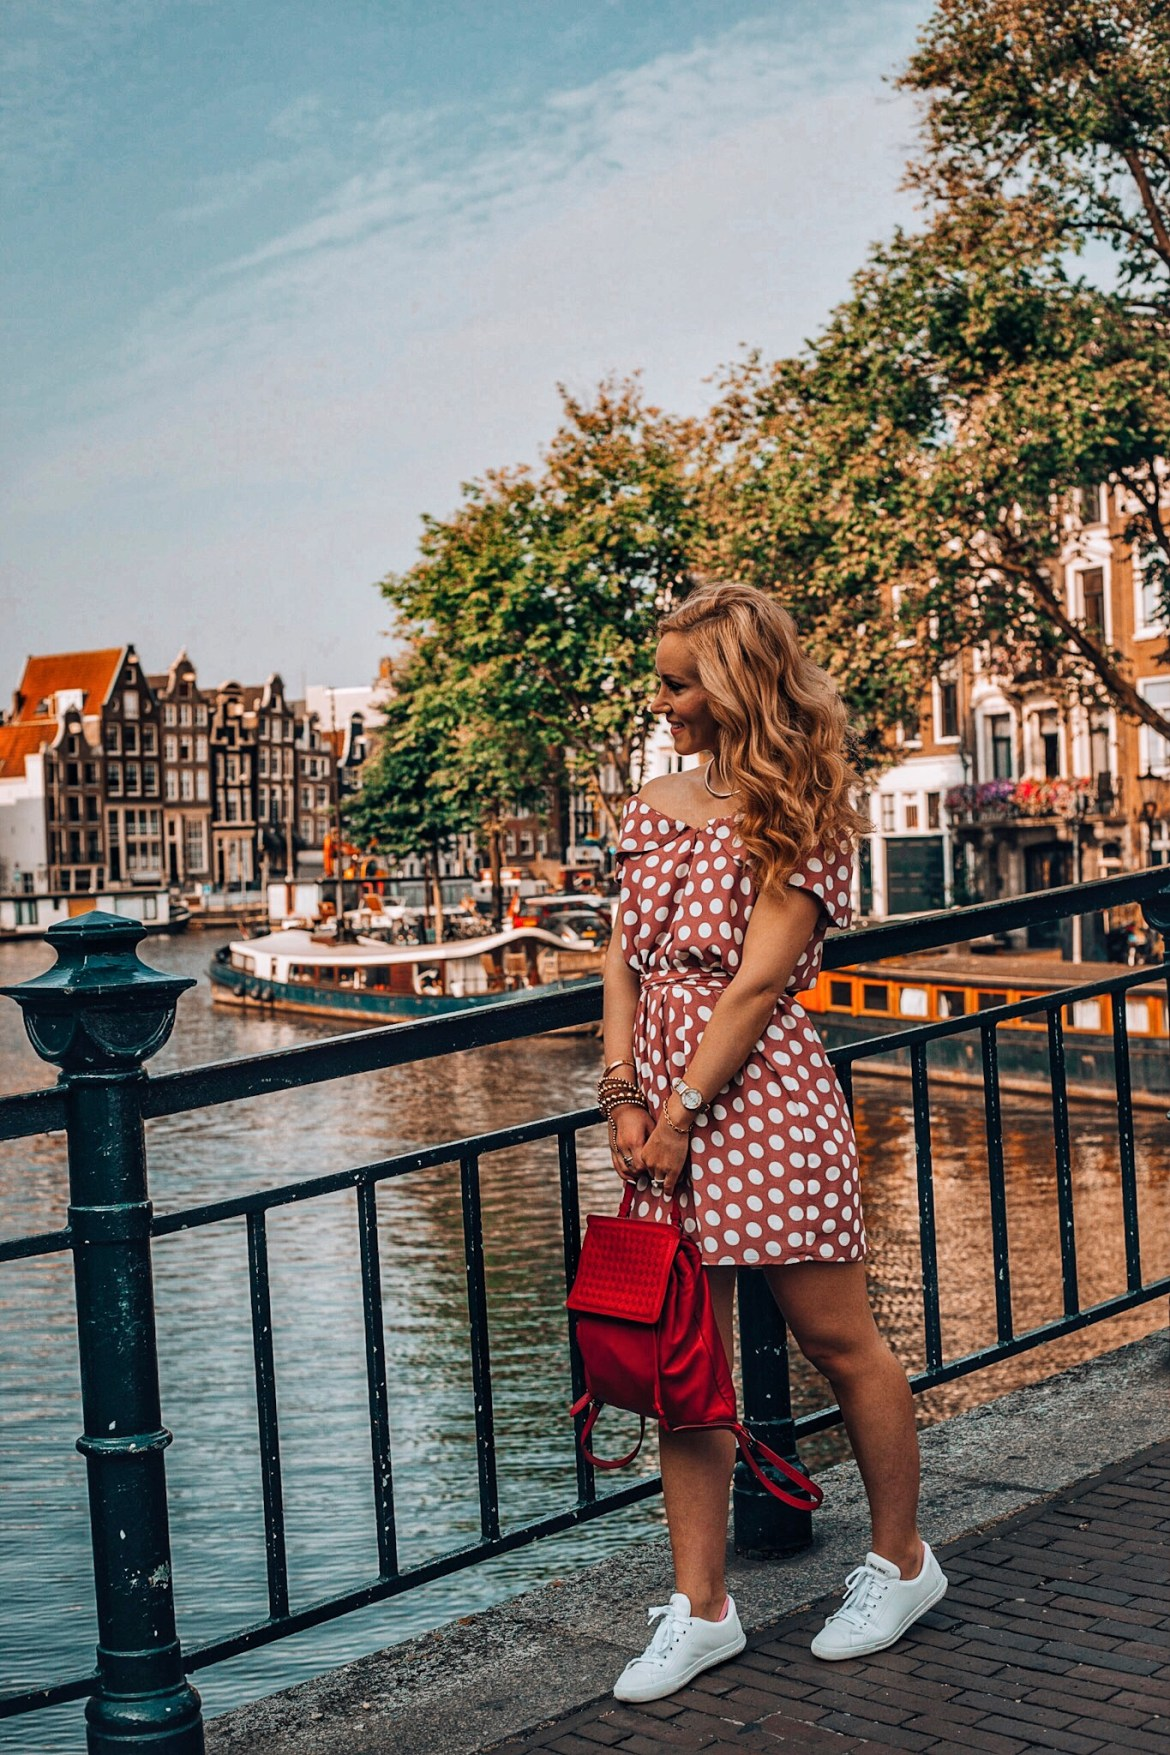 c2002a3f46 Amsterdam Traveller s Guide - Fashion Eats Travel